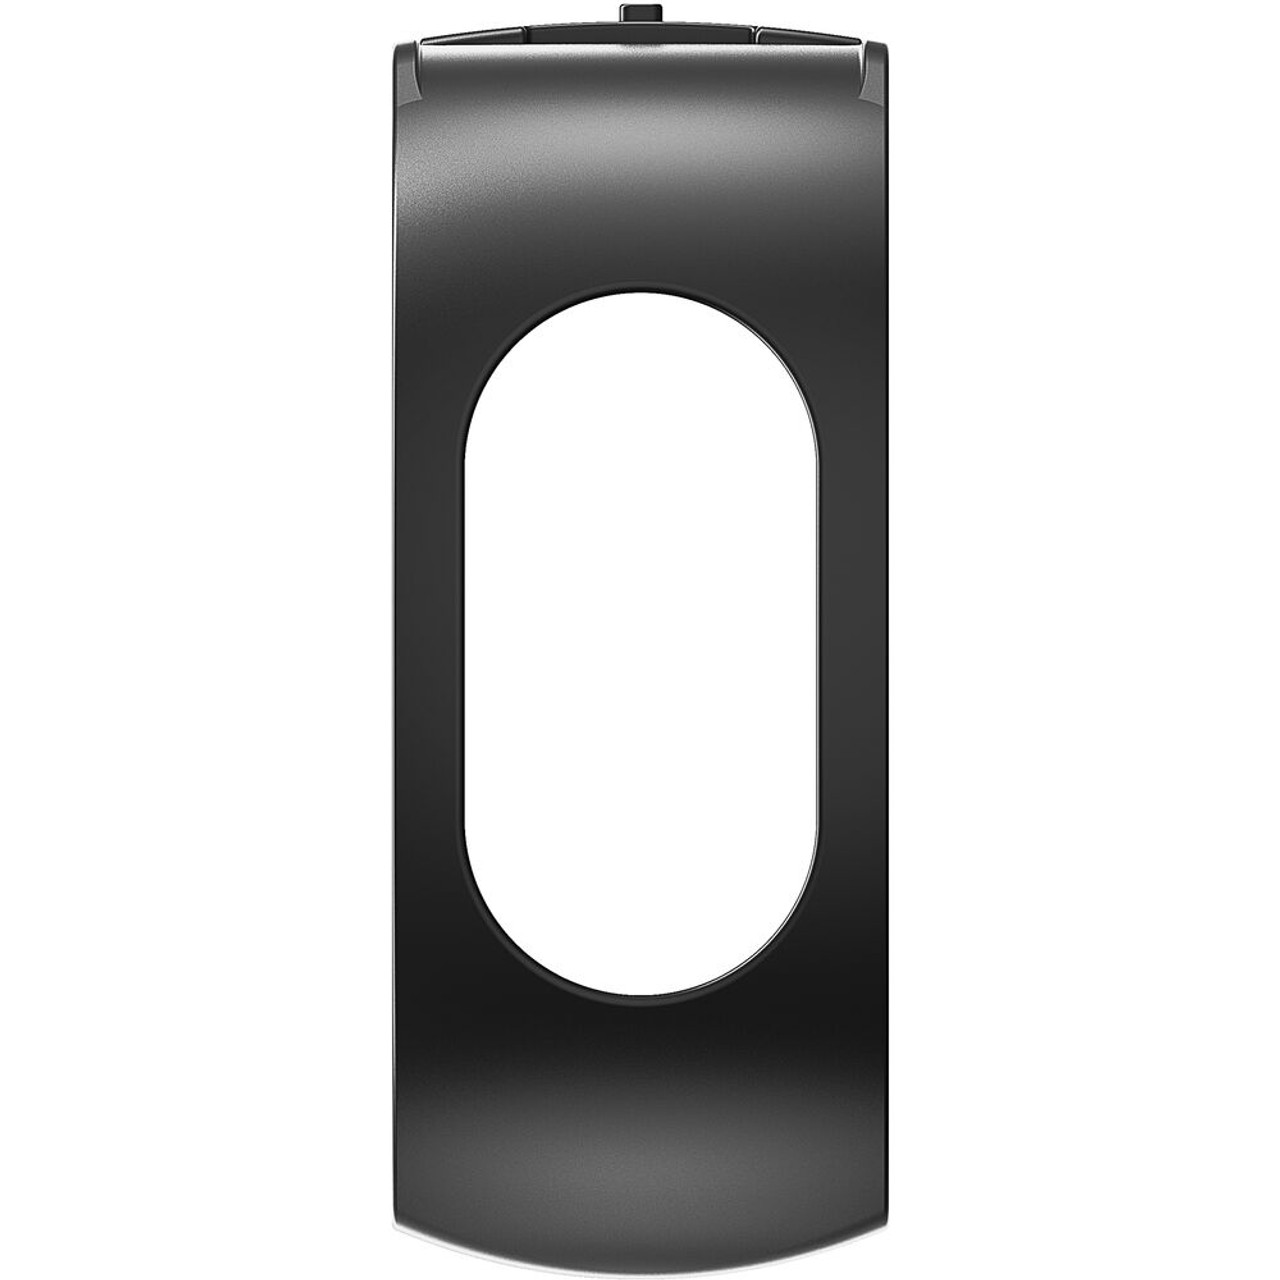 Chasing M2 Swappable Battery 200Wh